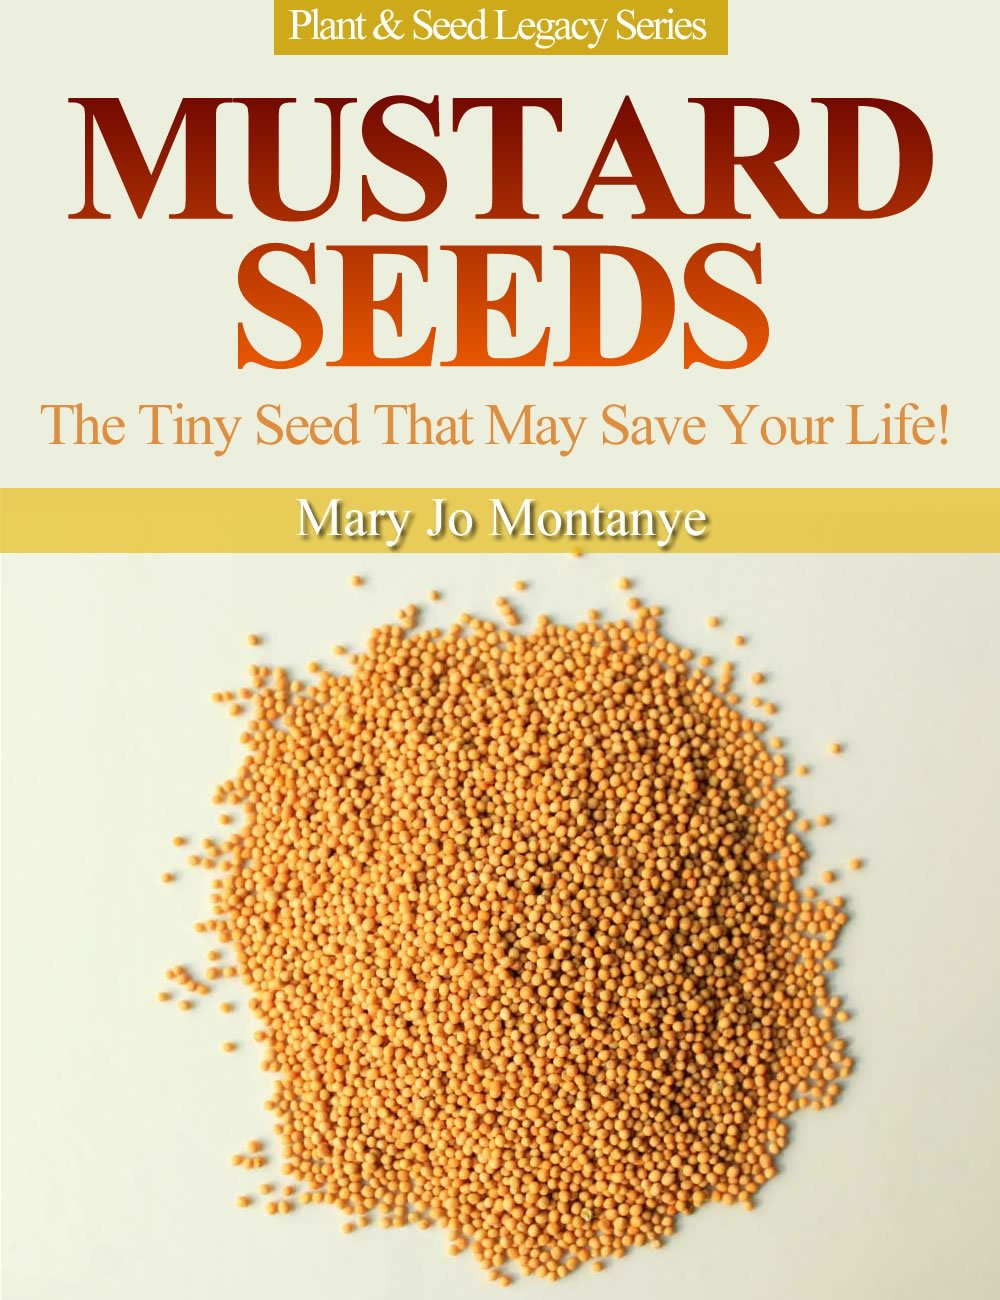 http://www.amazon.com/Mustard-Seeds-Plant-Legacy-Series-ebook/dp/B00CS74MO8/ref=as_sl_pc_ss_til?tag=lettfromahome-20&linkCode=w01&linkId=QPUY4HUUKDB75YC4&creativeASIN=B00CS74MO8